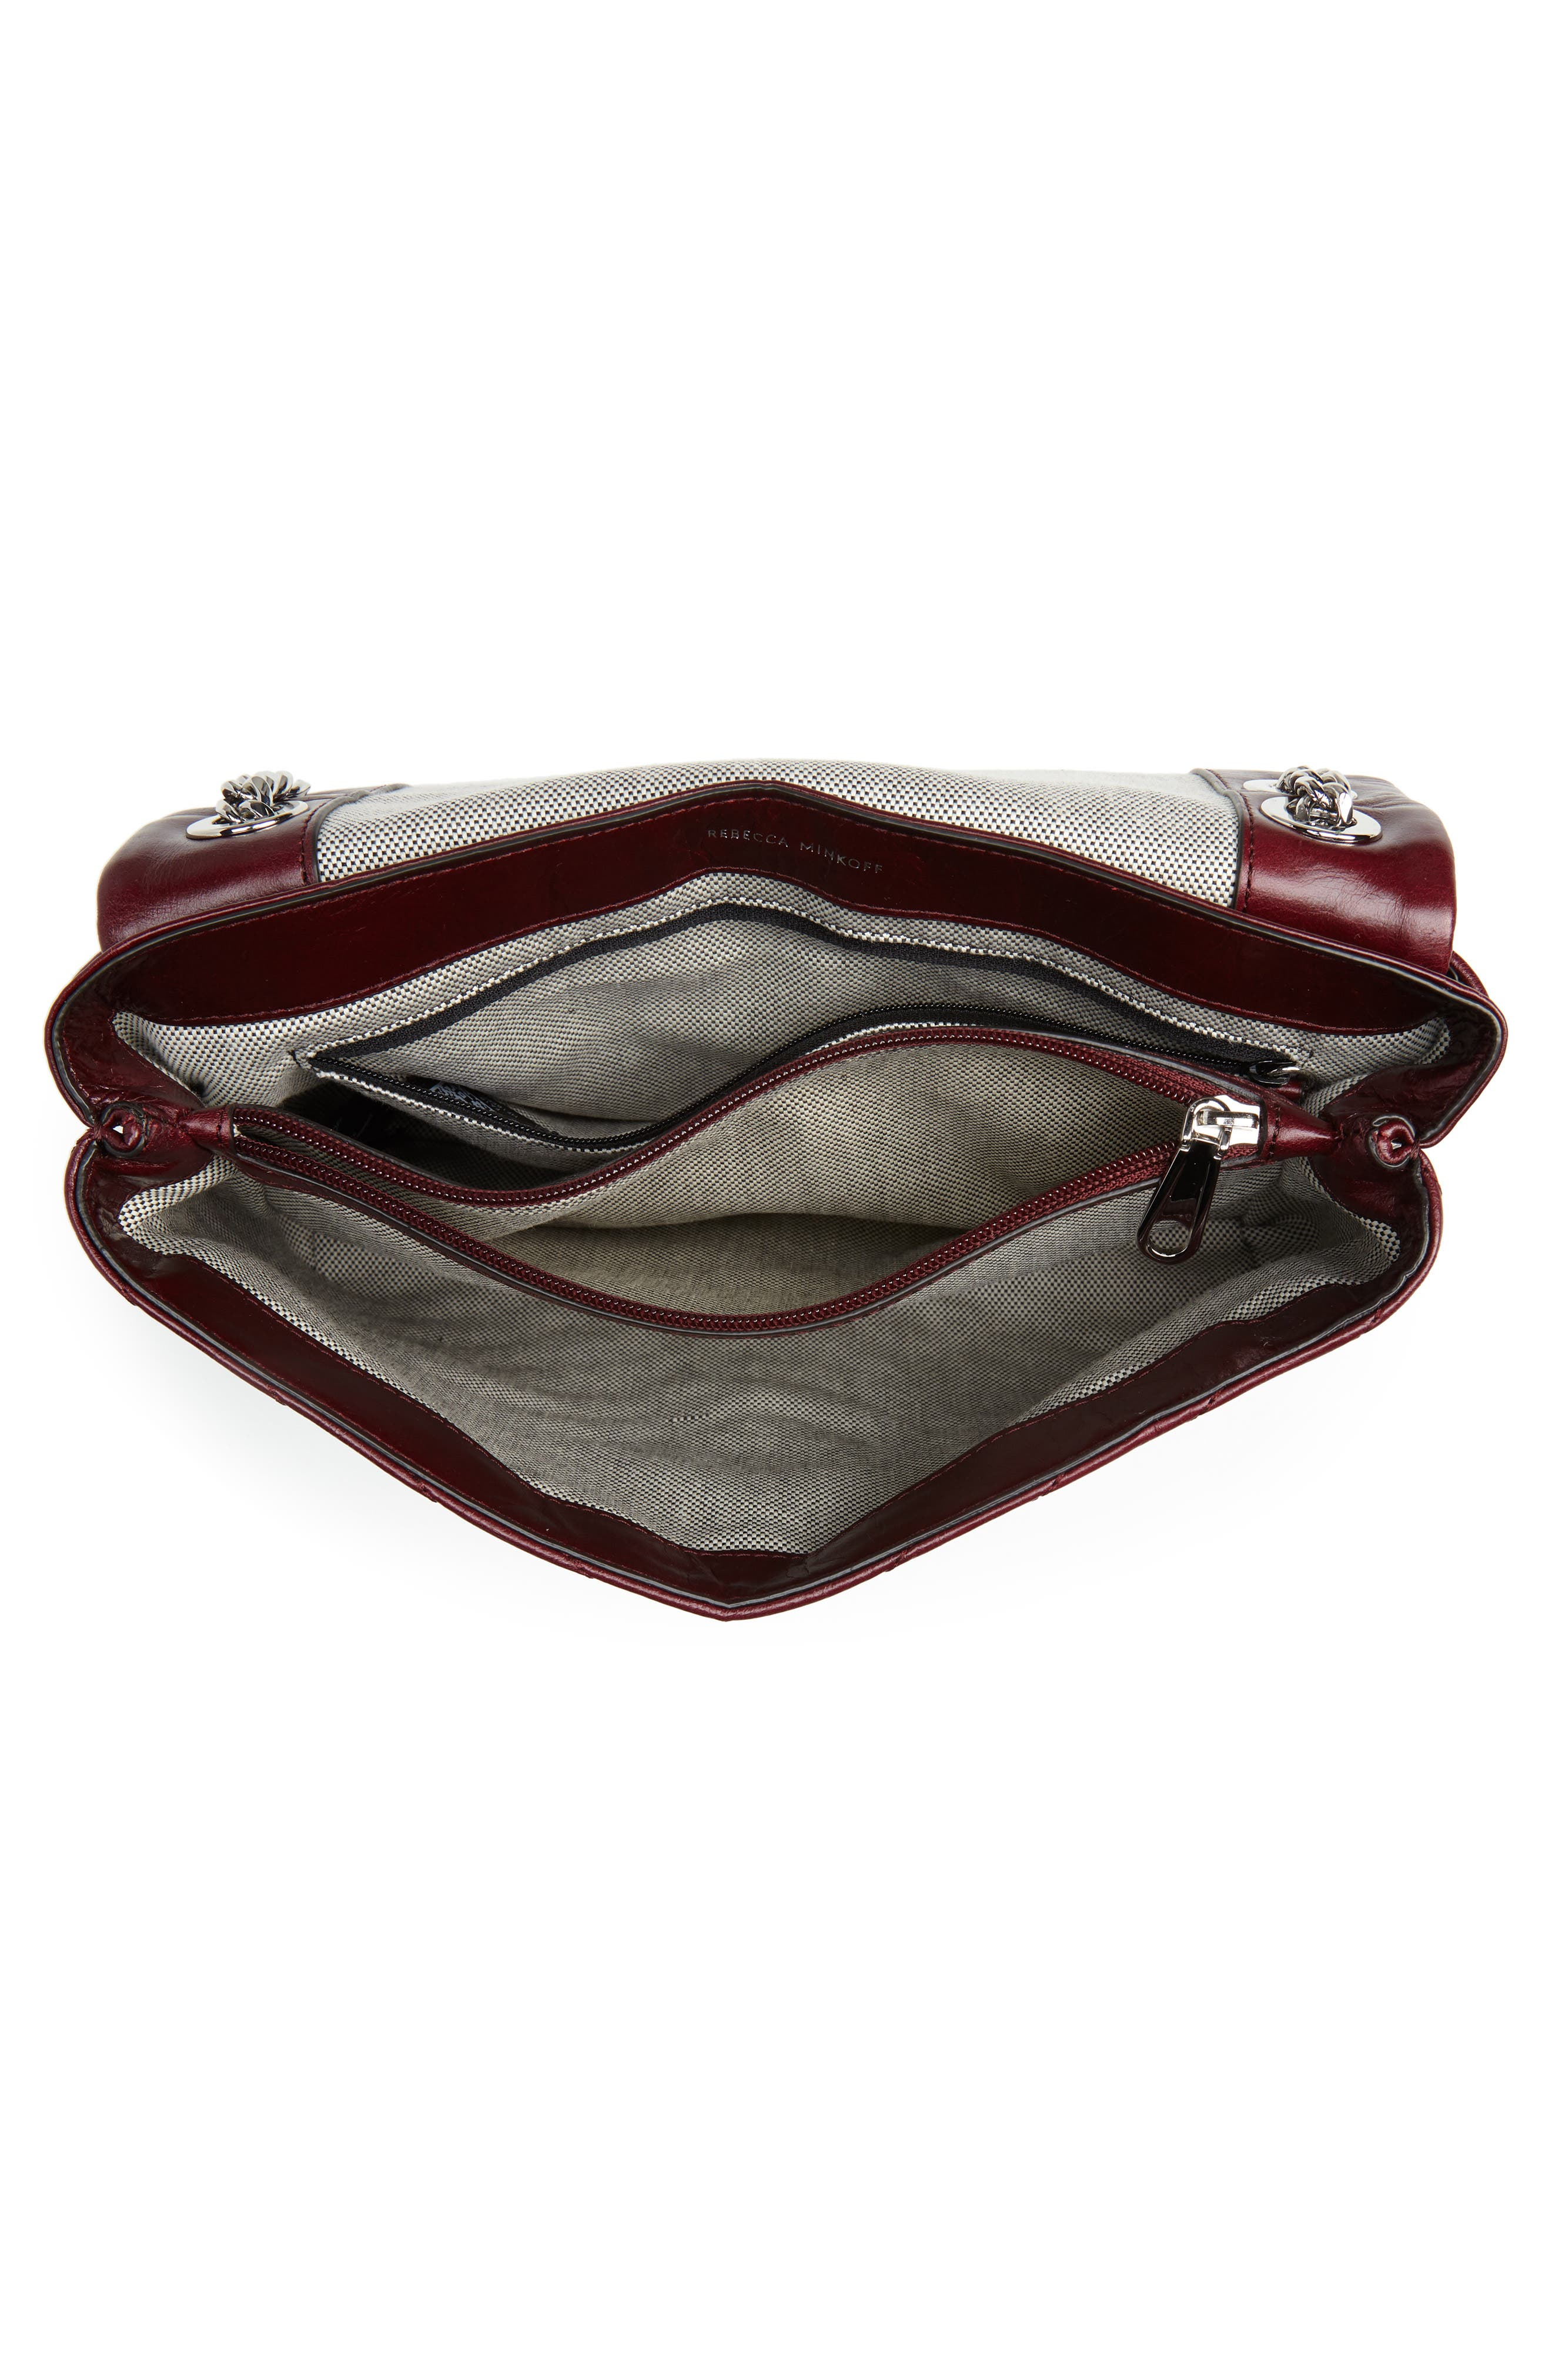 Edie Flap Front Leather Shoulder Bag,                             Alternate thumbnail 4, color,                             BORDEAUX